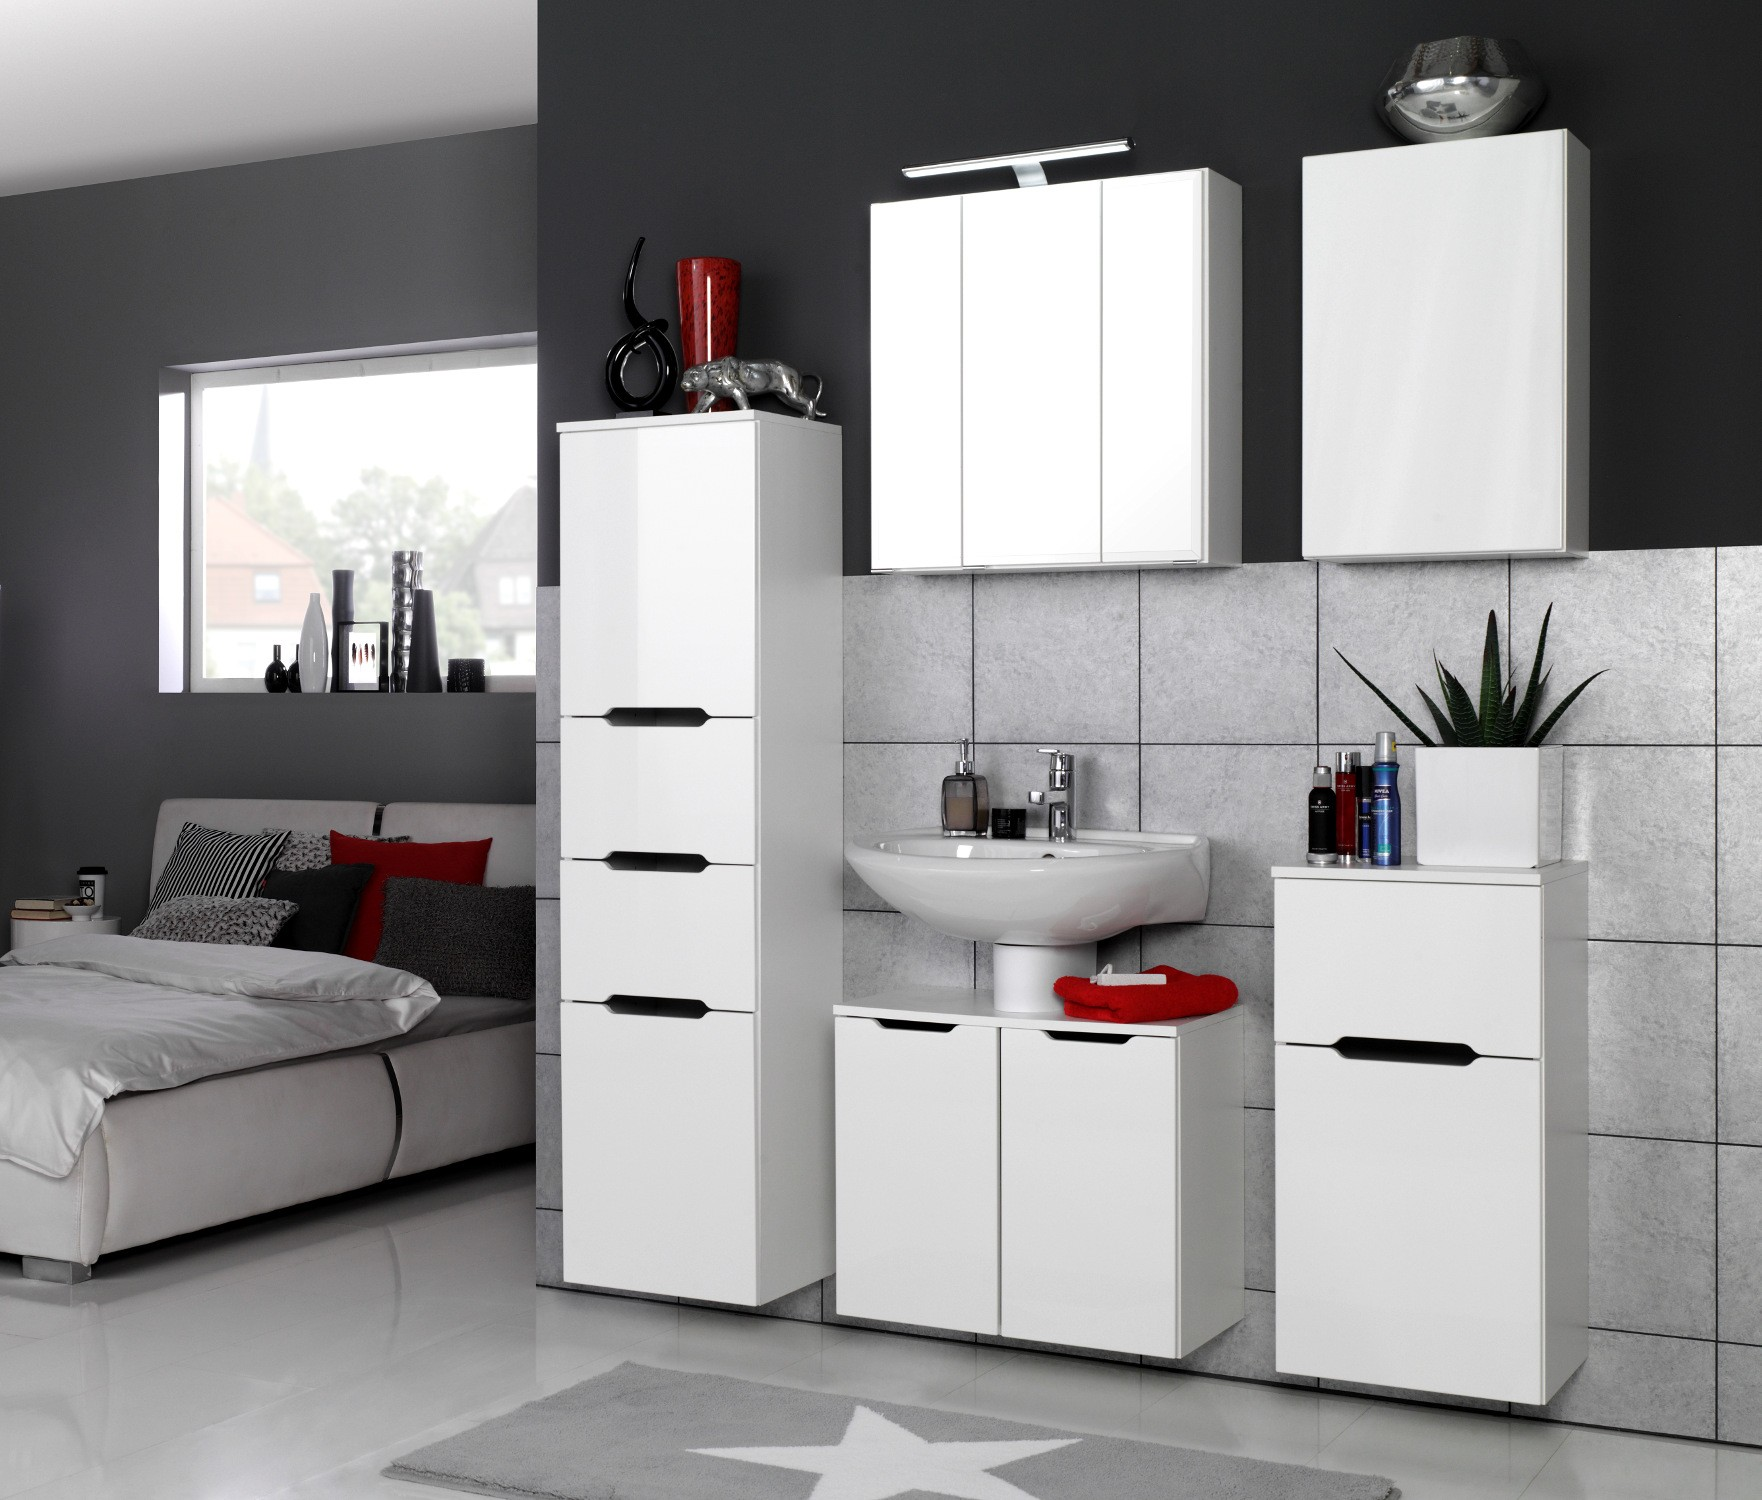 badm bel set belluno 6 teilig 140 cm breit hochglanz wei bad badm belsets. Black Bedroom Furniture Sets. Home Design Ideas